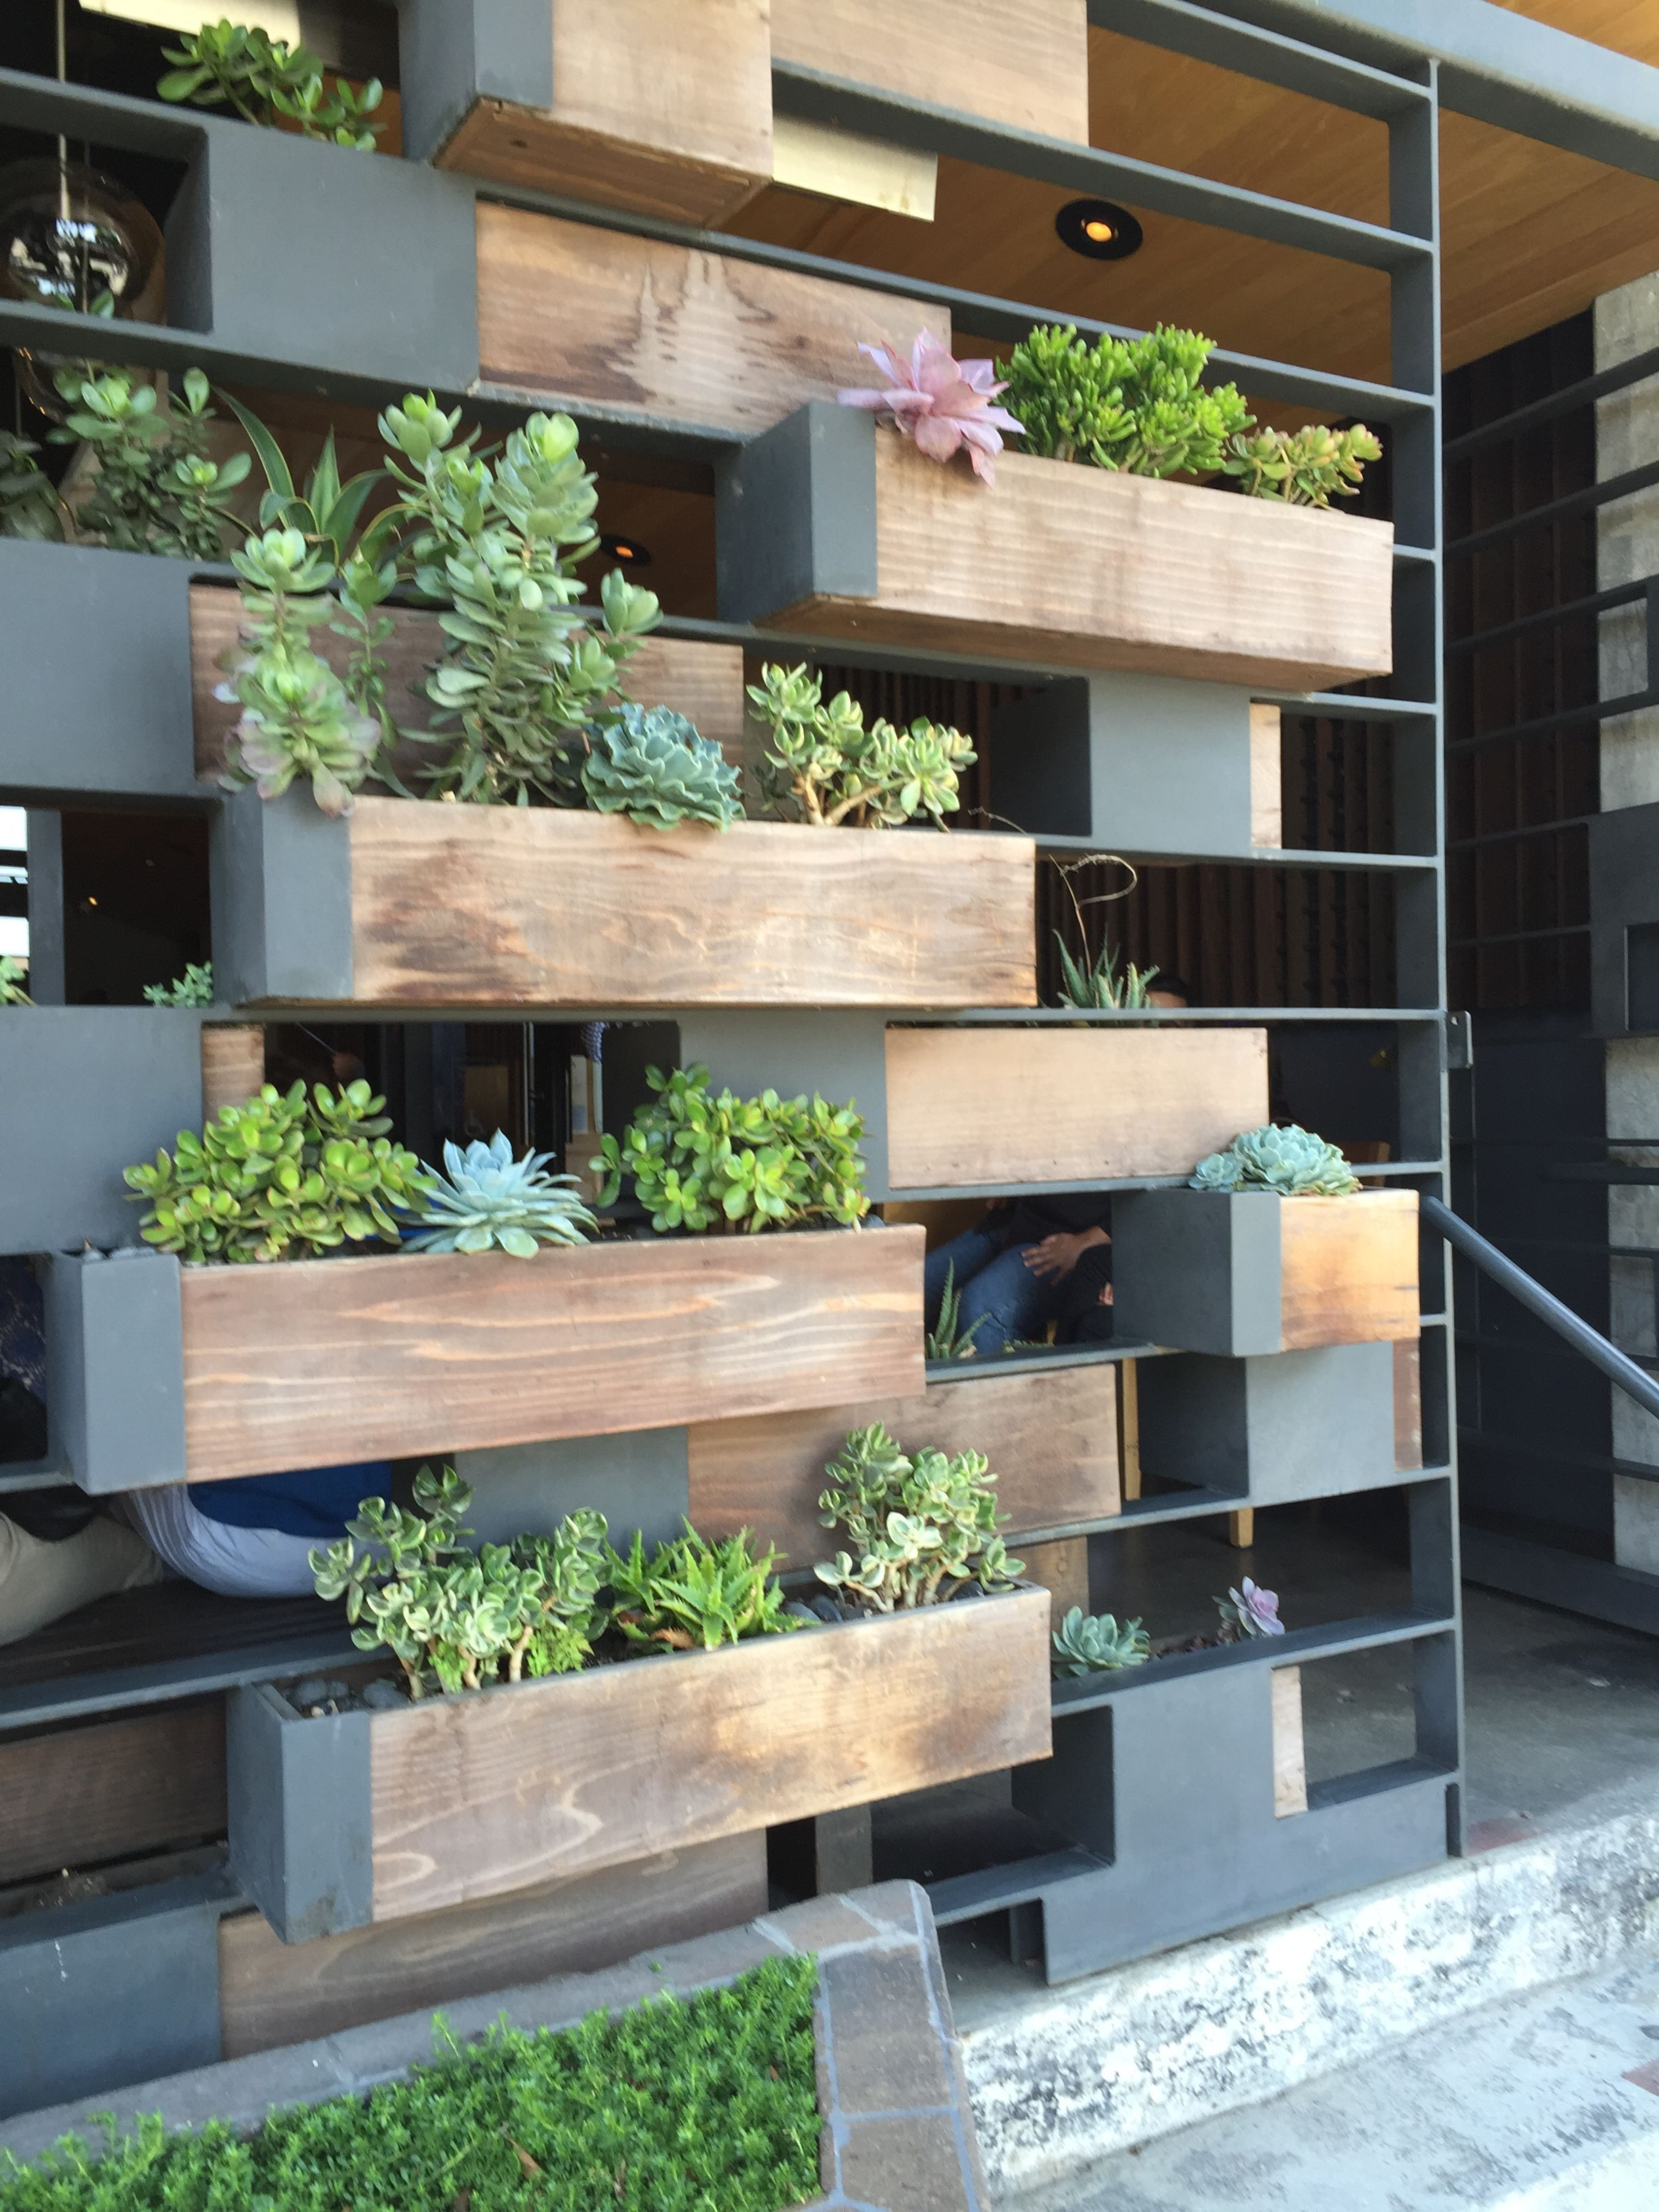 30 Diy Vertical Garden Design Ideas For Your Home Home